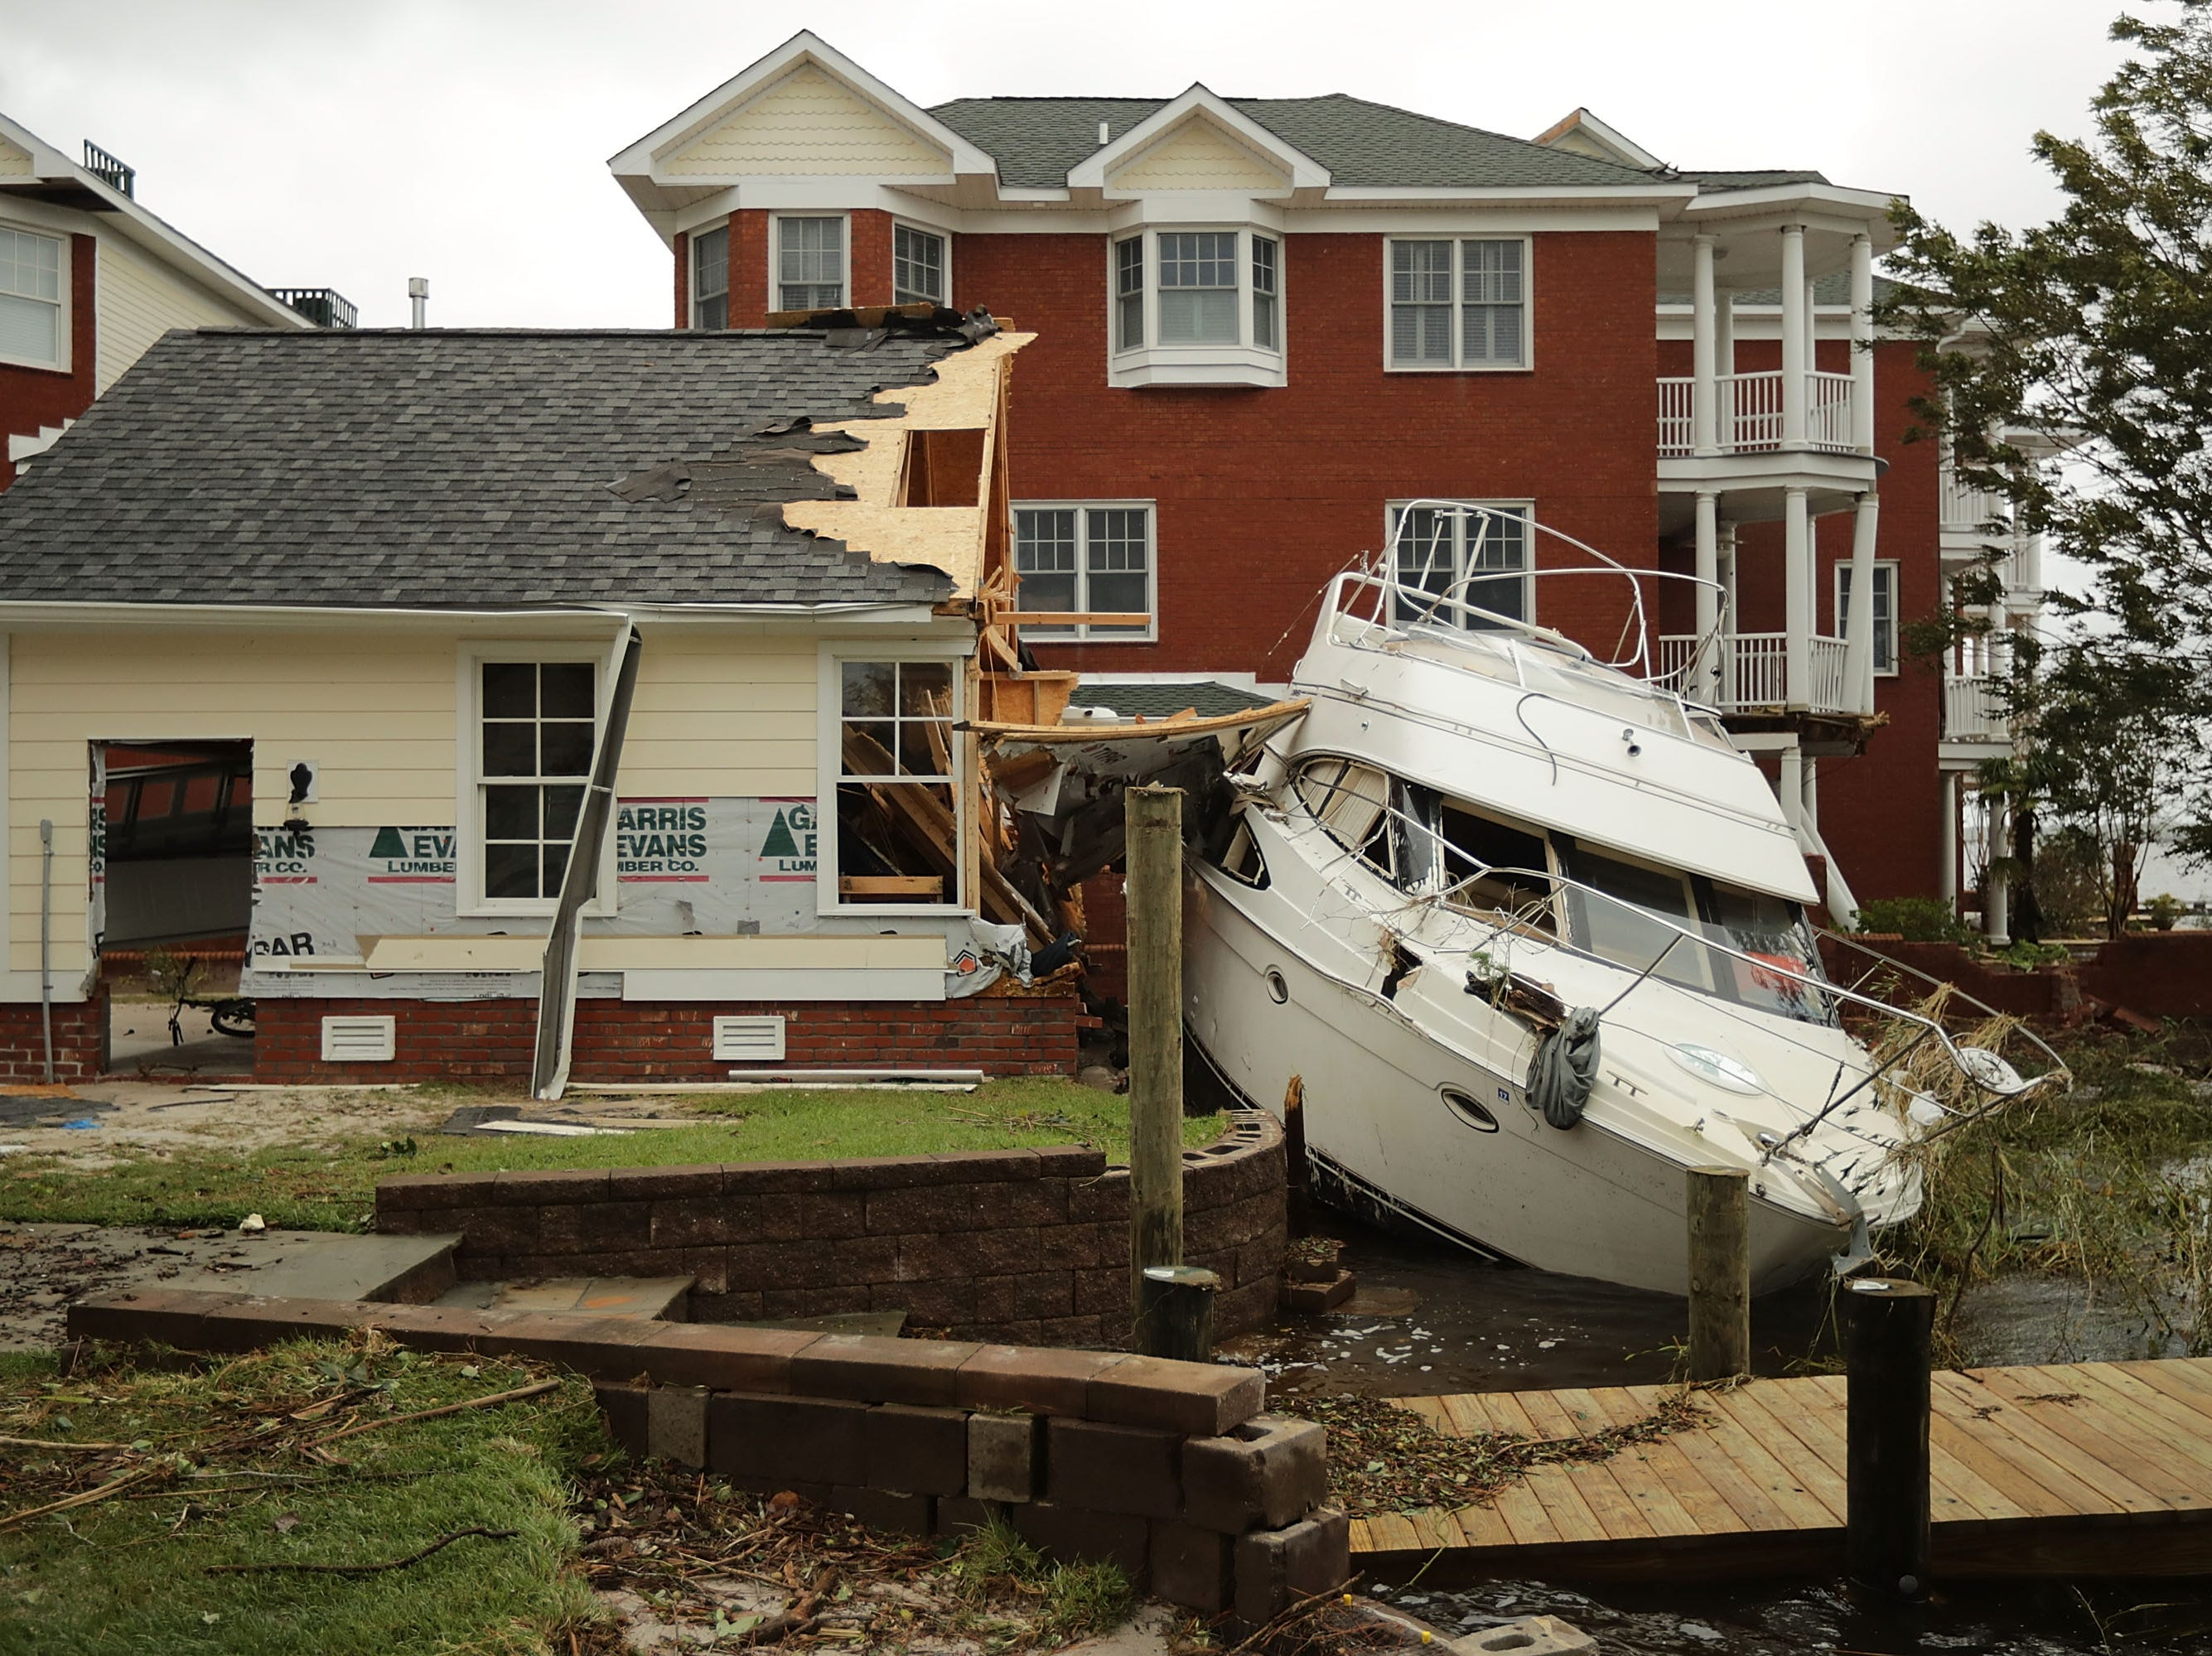 A boat lays smashed against a car garage, deposited there by the high winds and storm surge from Hurricane Florence along the Neuse River Sept. 15, 2018 in New Bern, N.C.